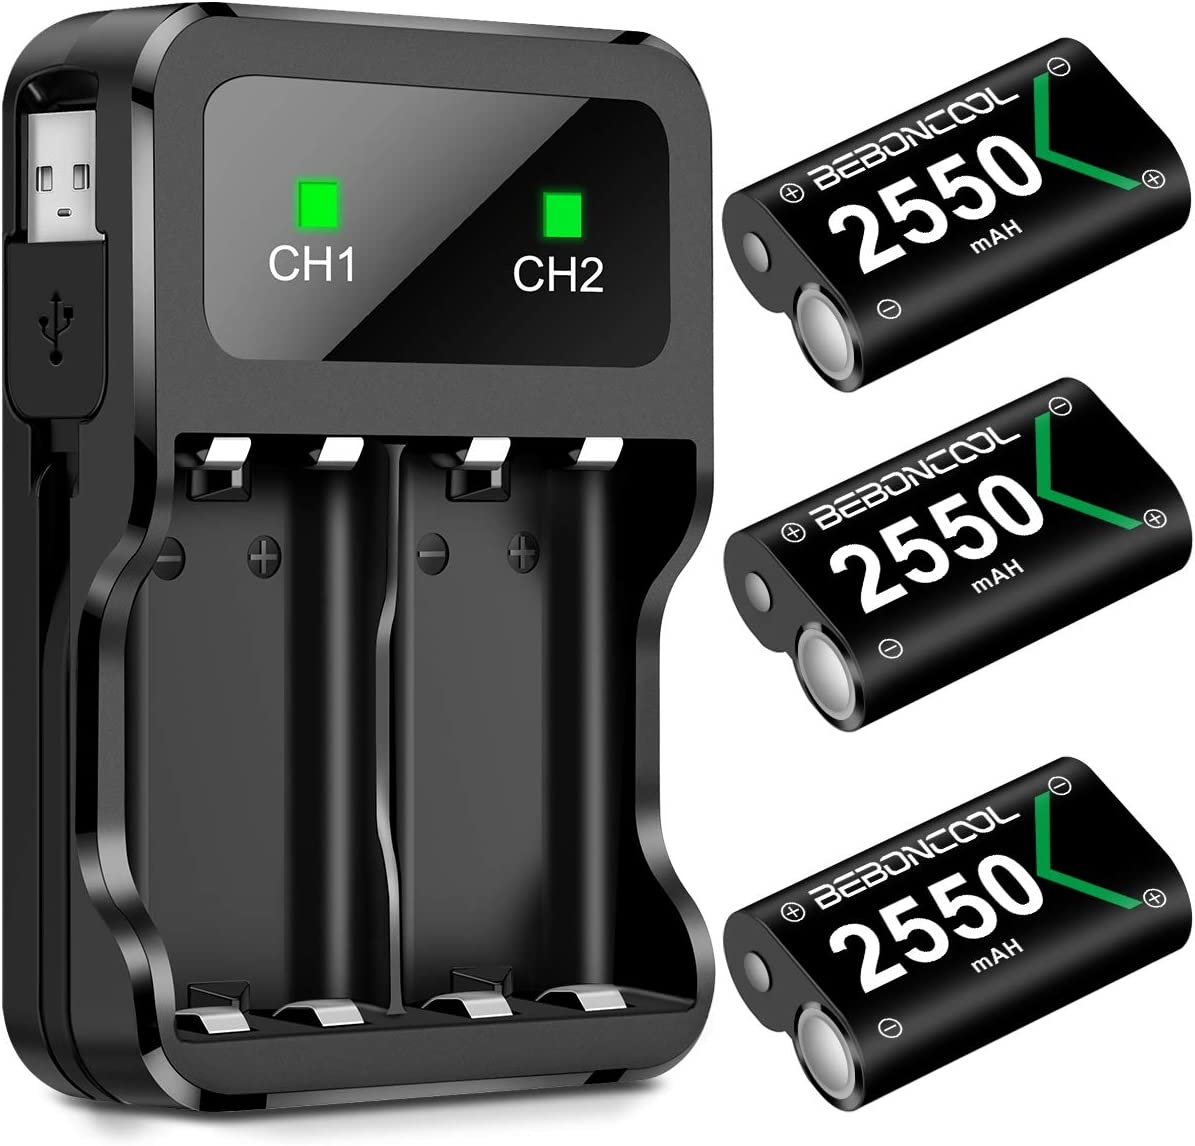 Controller Battery Pack for Xbox One, Rechargeable Battery Pack for Xbox One/Xbox One S/Xbox One X/Xbox One Elite Controller, 3x2550 mAh with Rechargeable Battery Charger